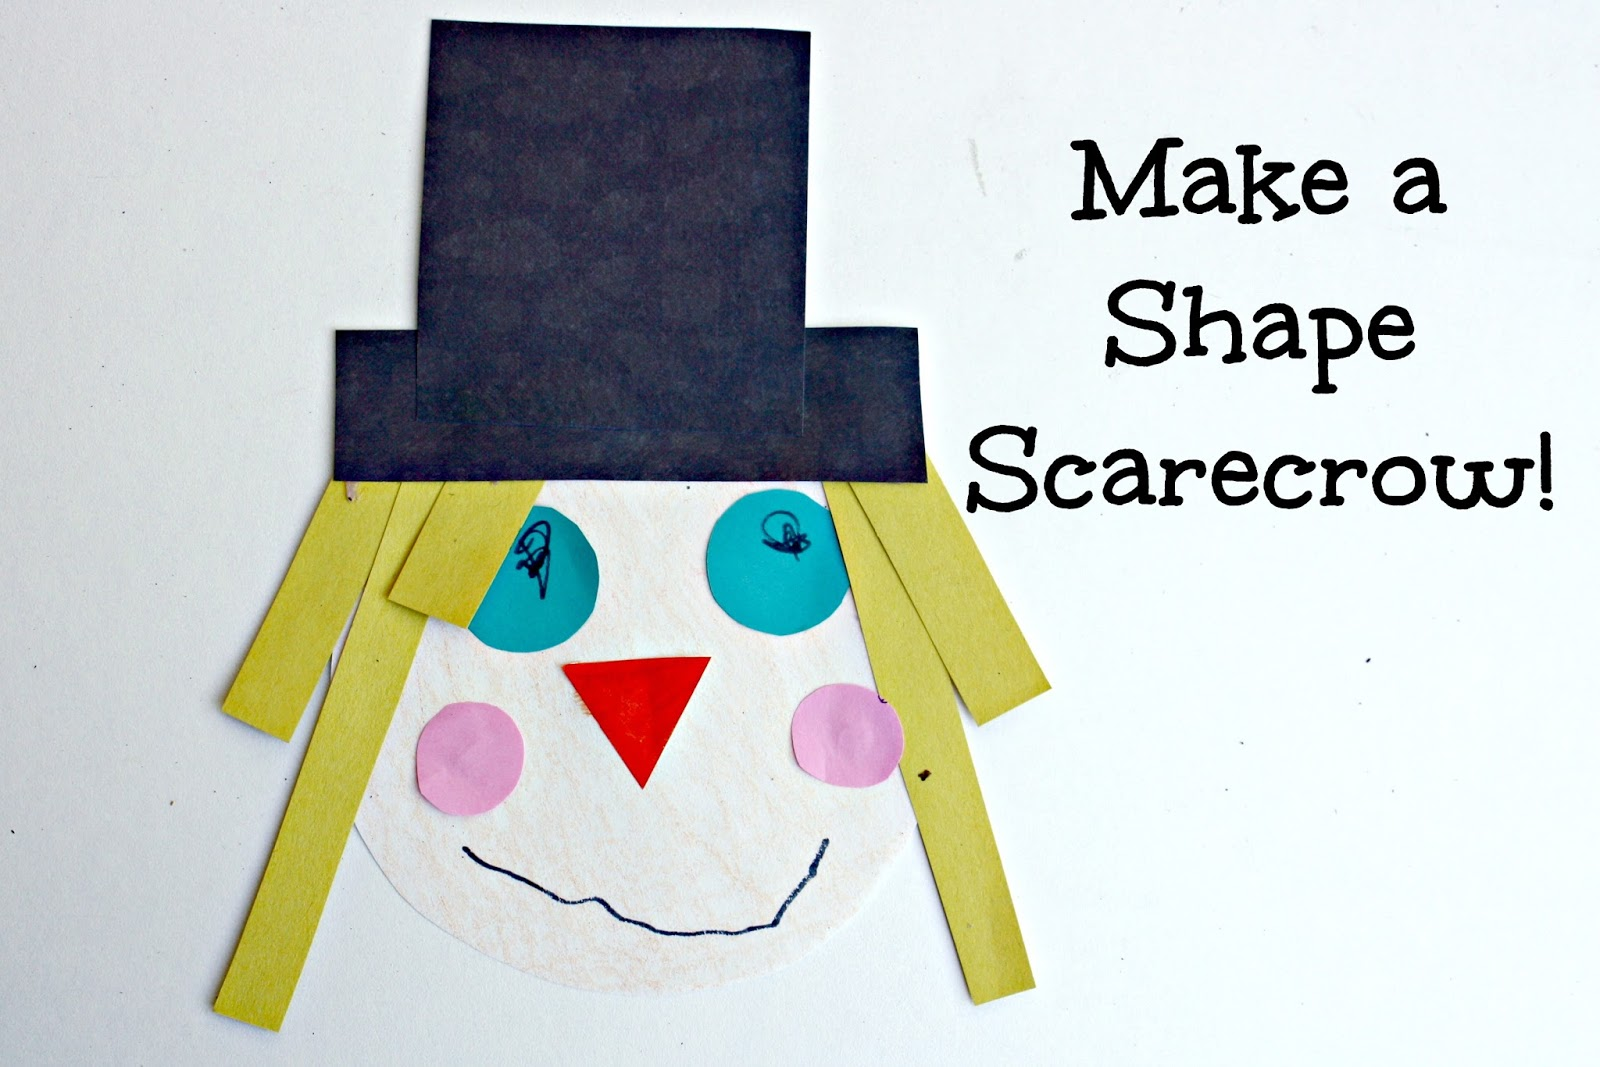 Make a shape scarecrow